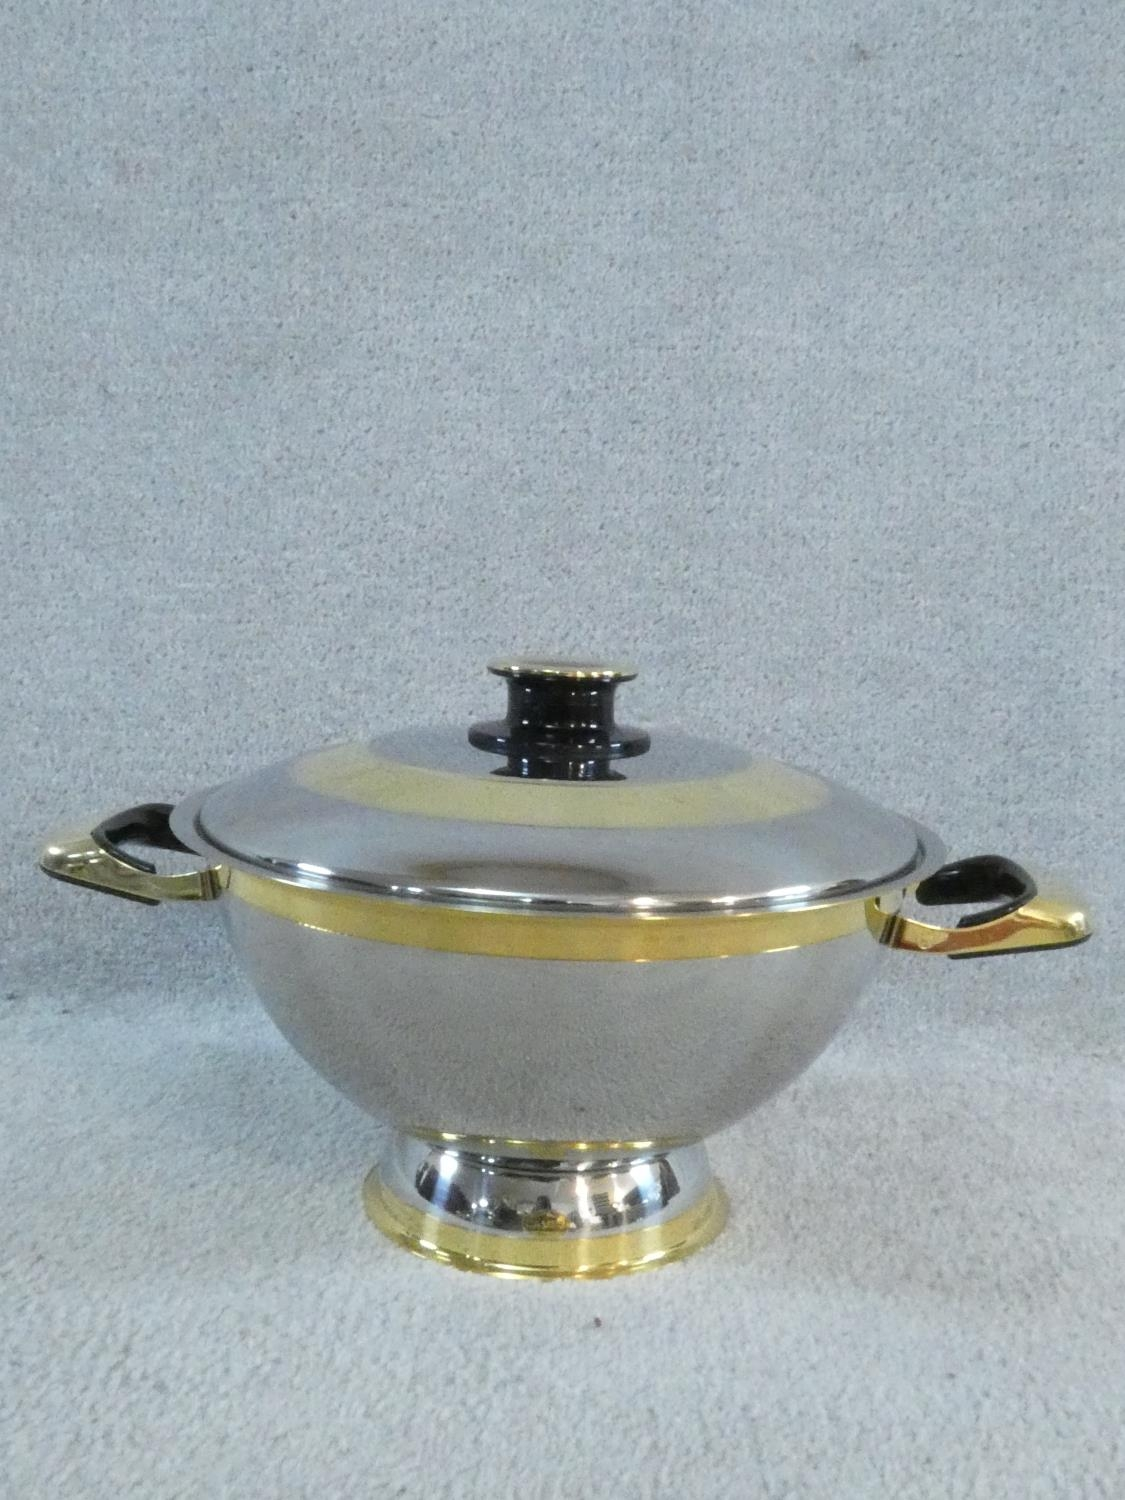 A set of boxed stainless steel as new Cameo Royale pans and cookware with 24k gold plated - Image 8 of 22